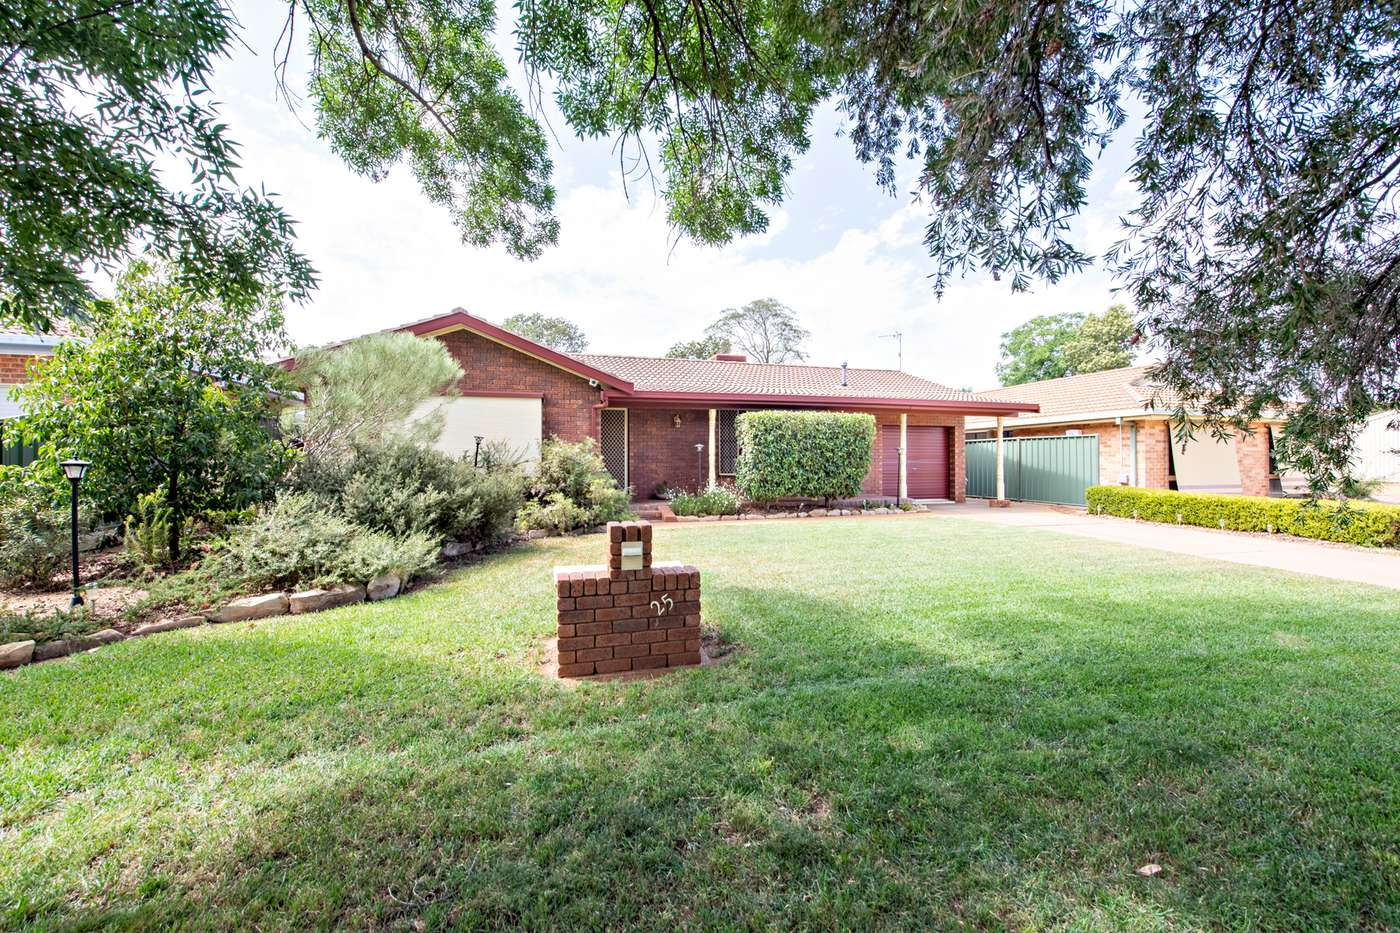 Main view of Homely house listing, 25 Aspen Road, Dubbo, NSW 2830